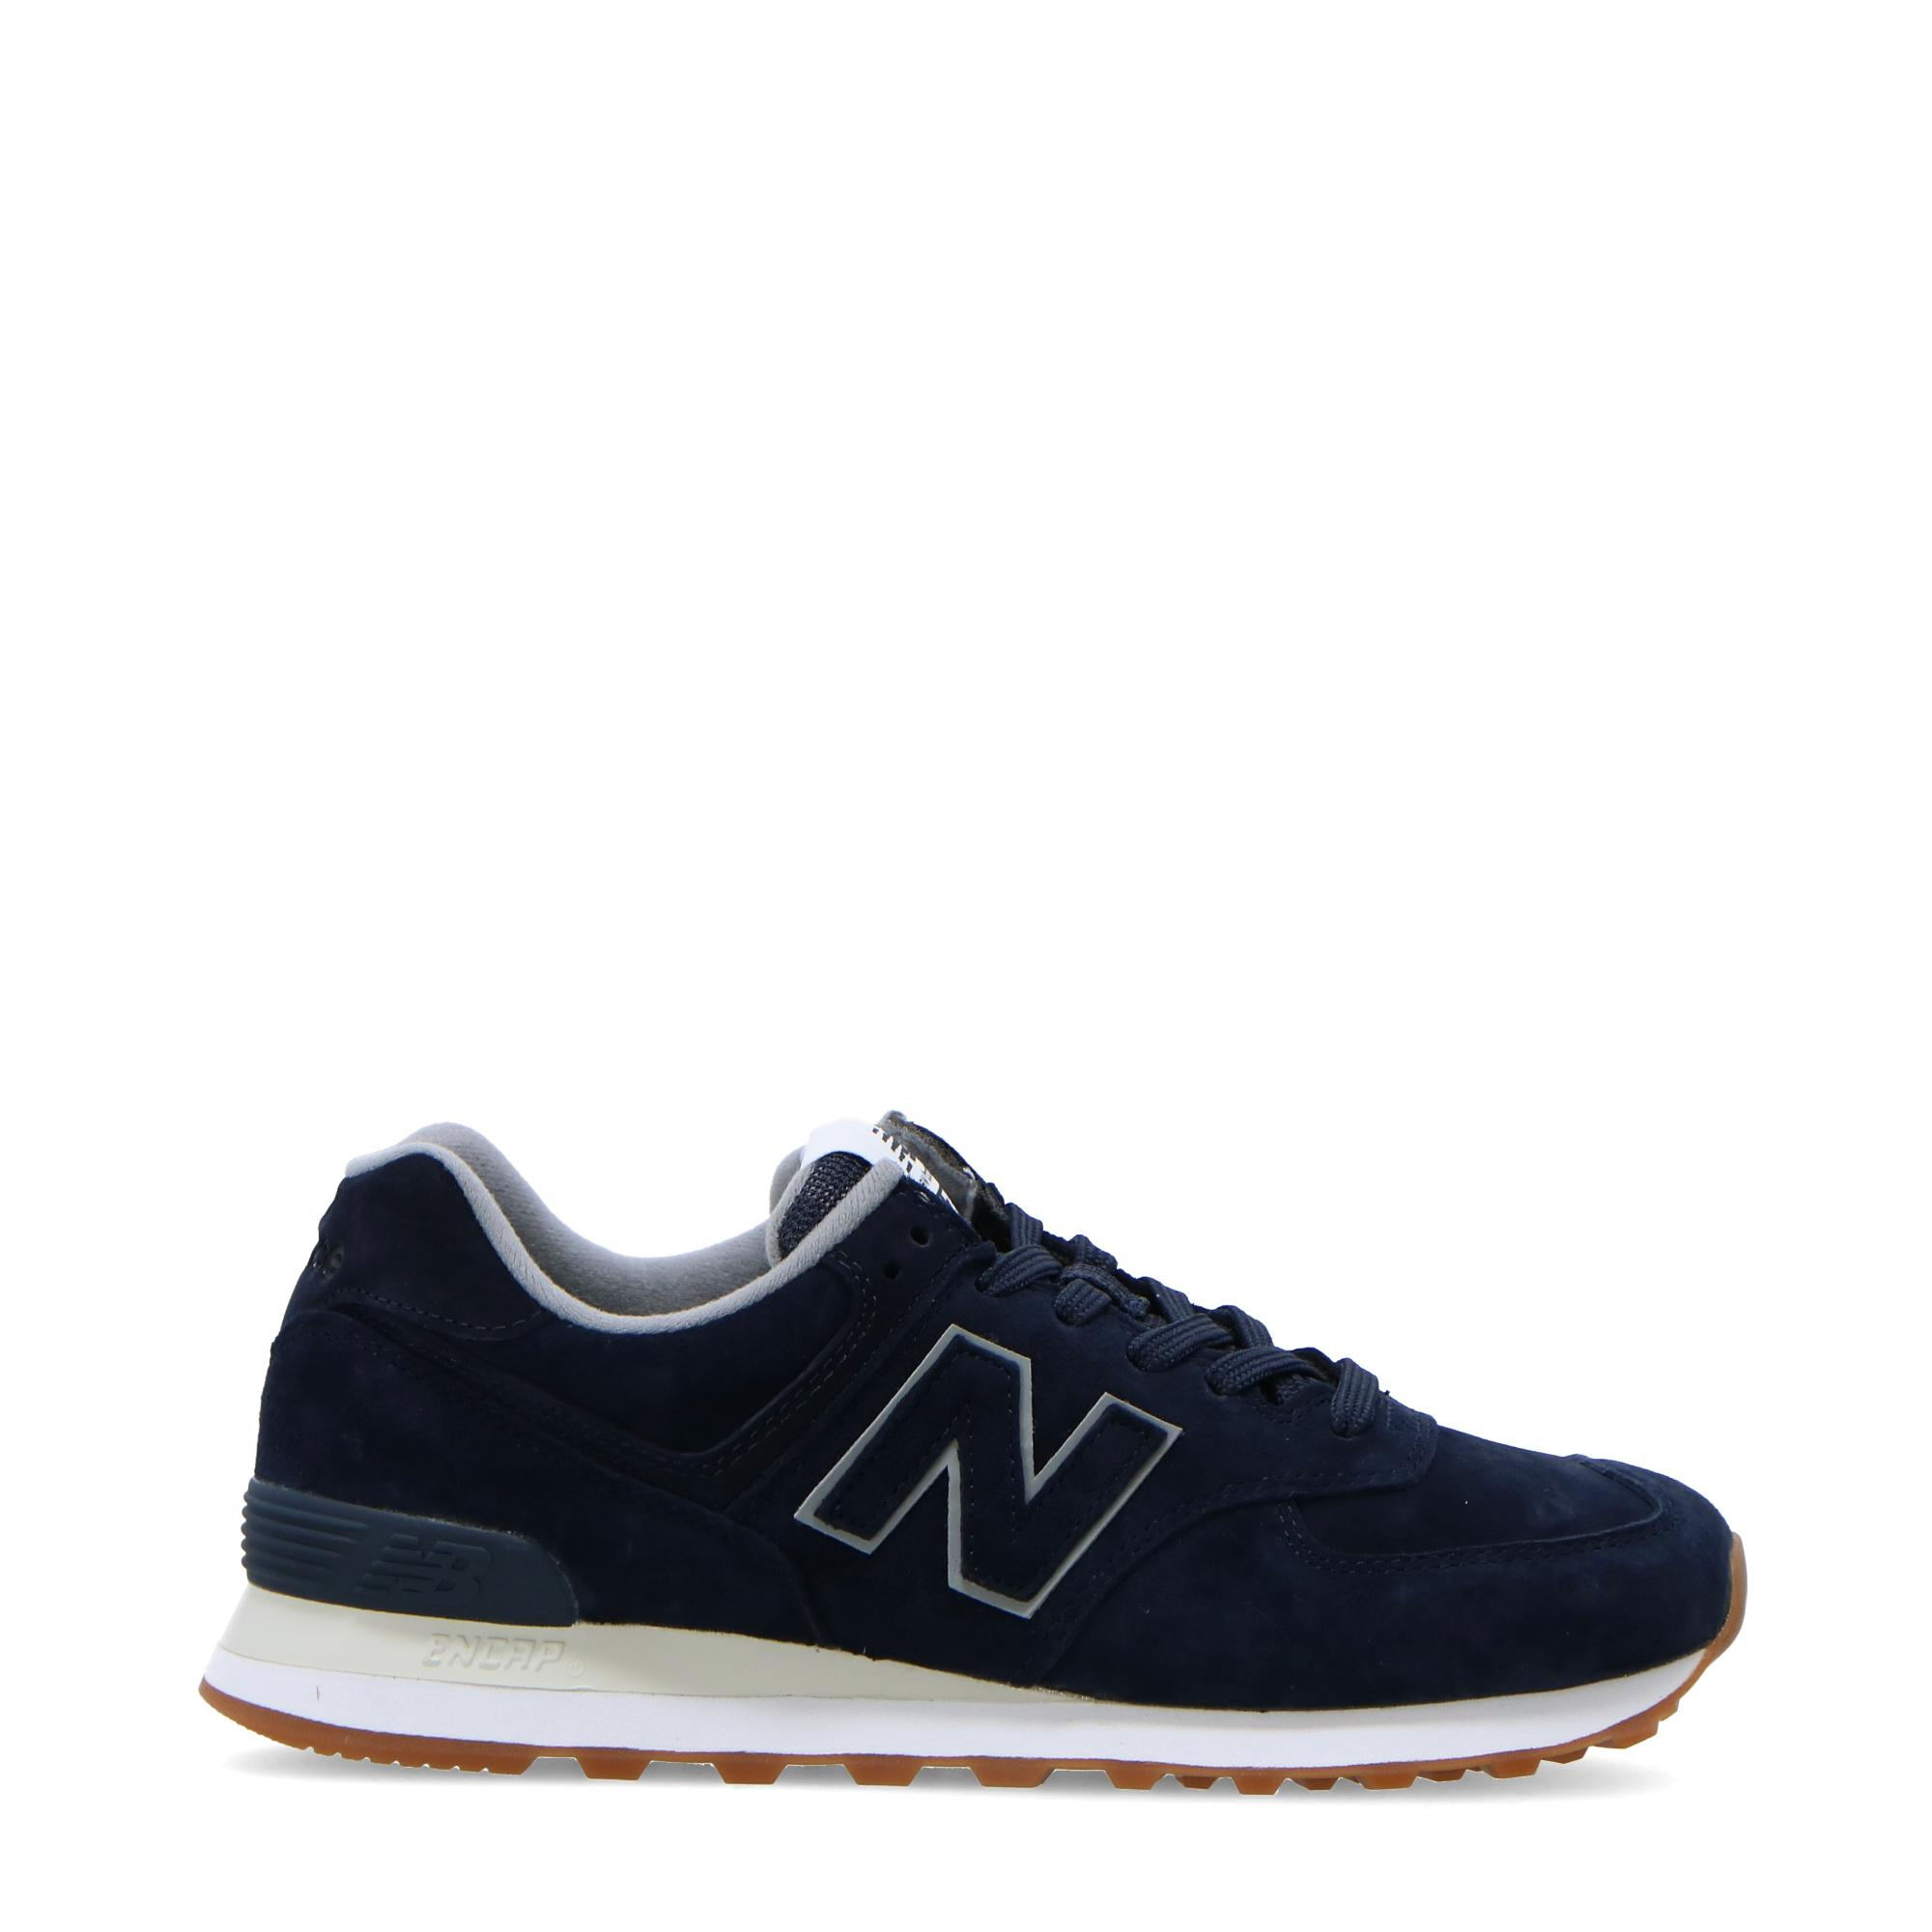 newest aa8e0 7d4b4 NEW BALANCE 574